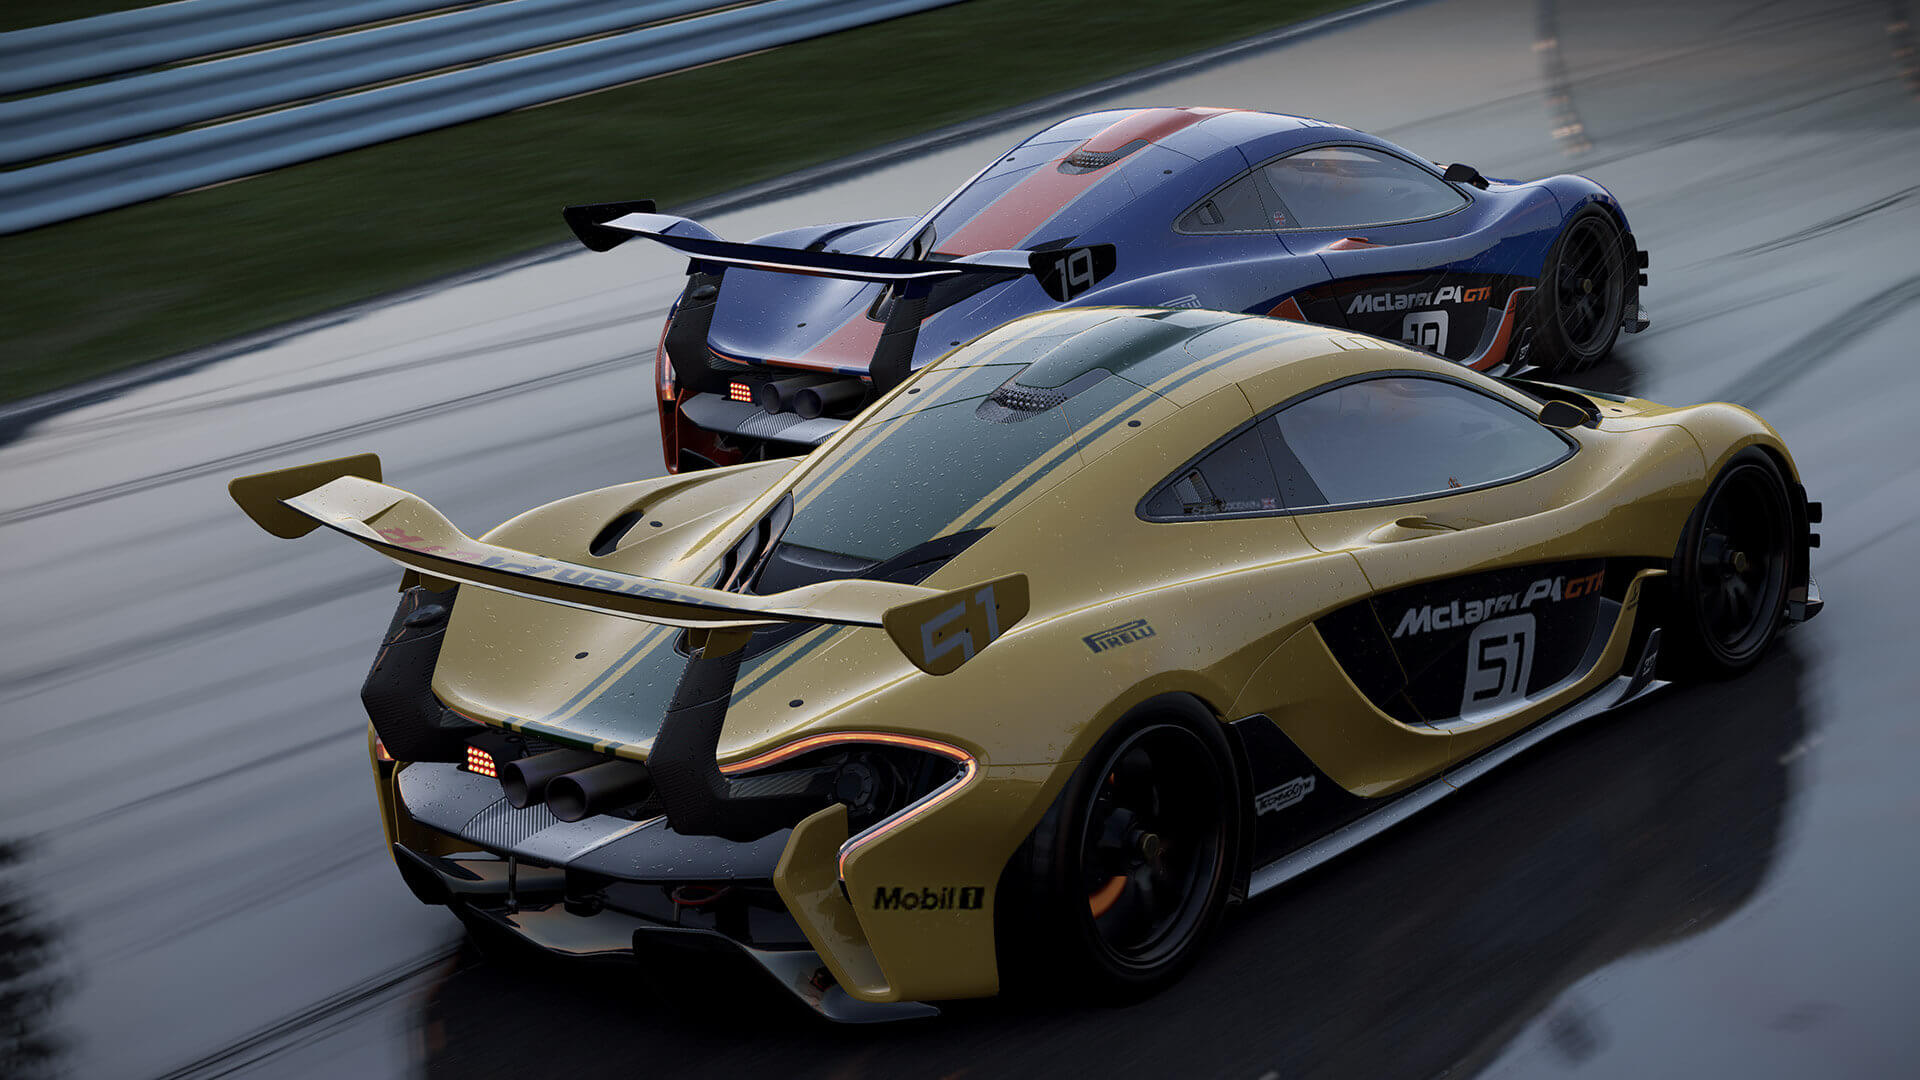 Here's a Full List of the 180 Vehicles Driveable Cars in Project Cars 2